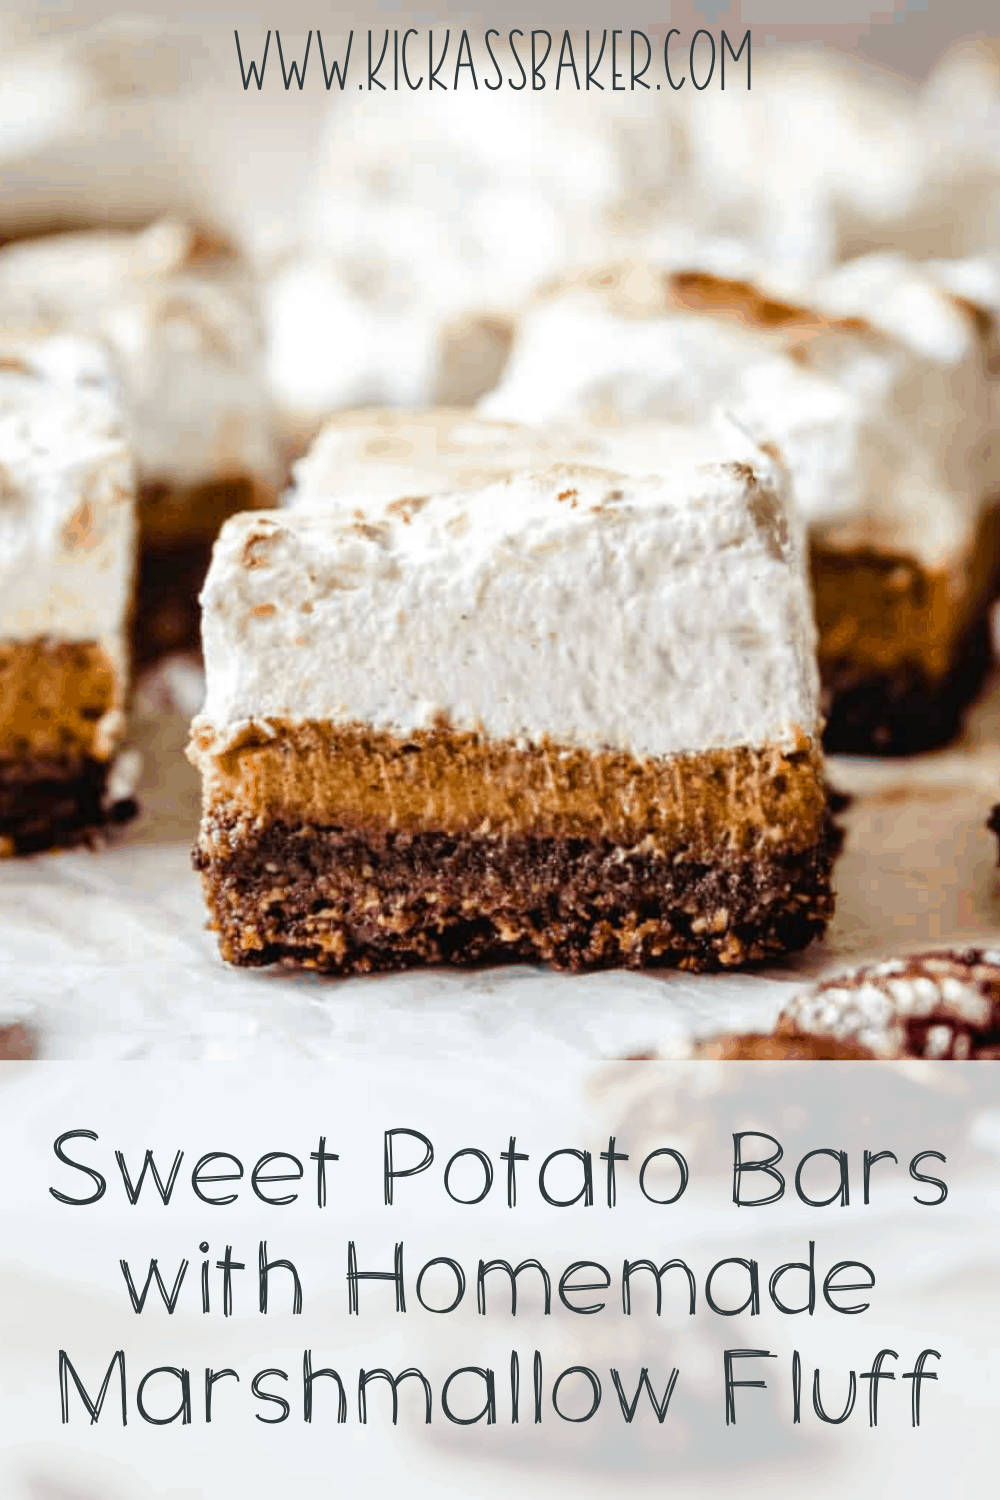 These sweet potato bars with a pecan crust and homemade marshmallow fluff will make a delicious Thanksgiving dessert.